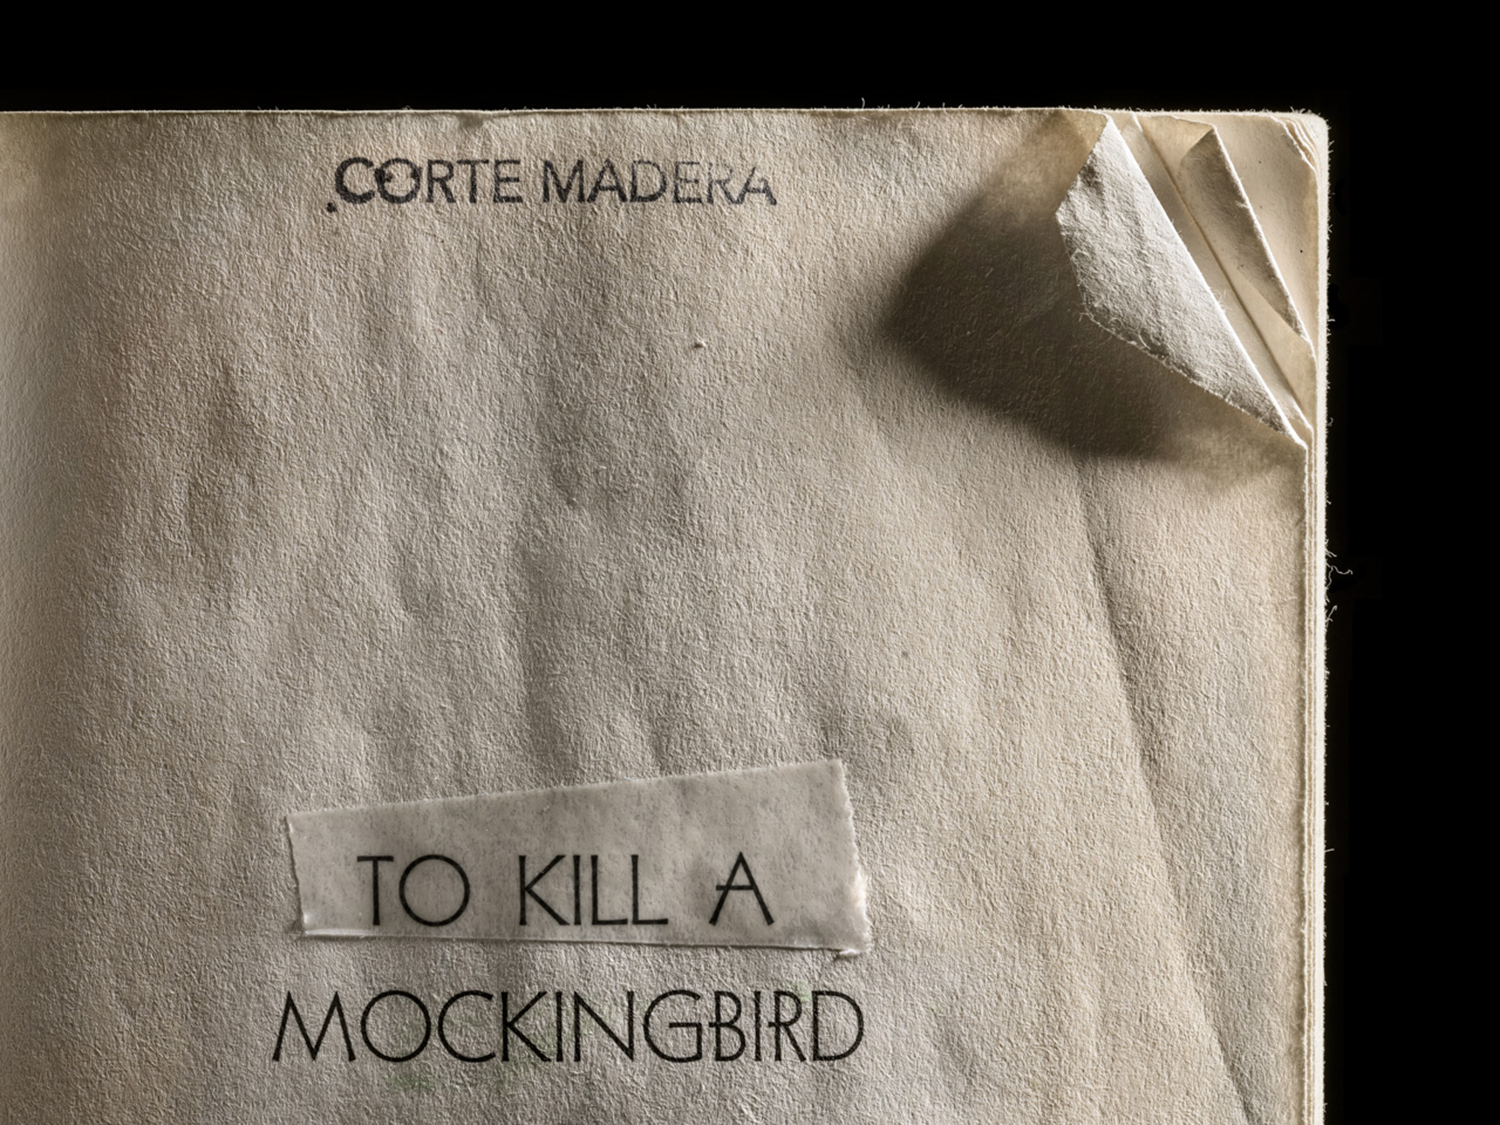 To Kill a Mockingbird, Dog Earred Corner